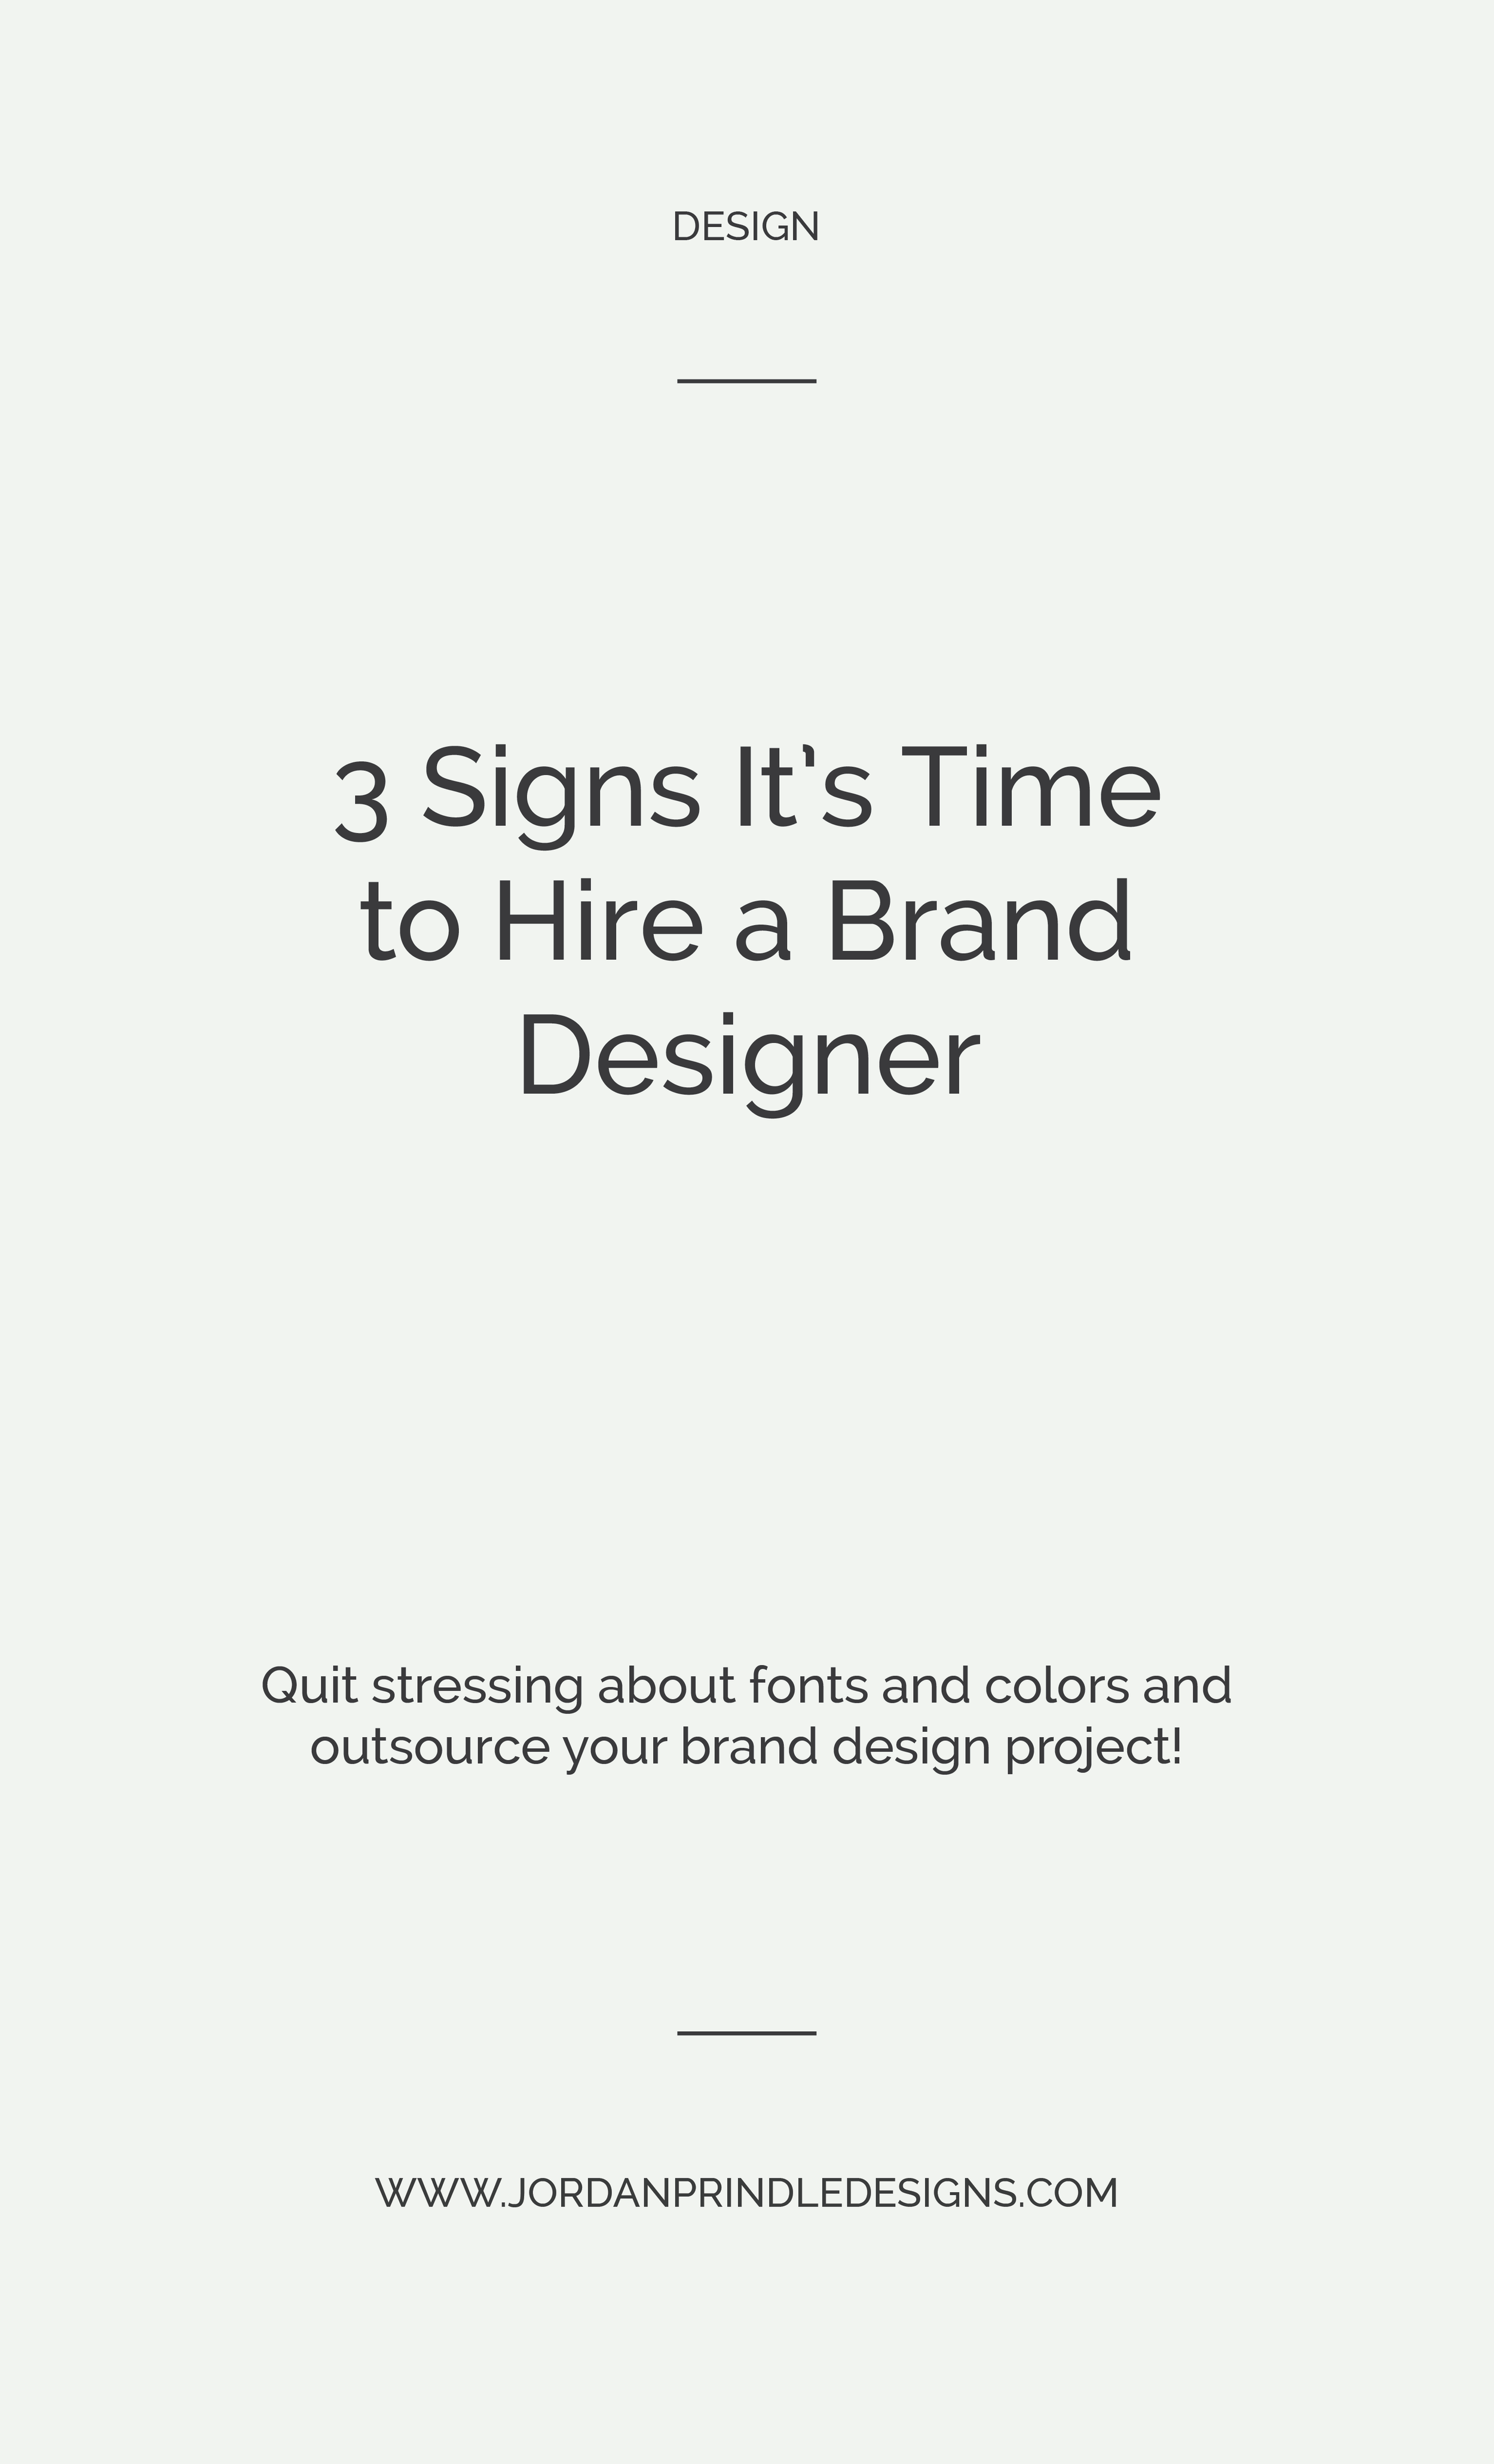 3 Signs It's Time to Hire a Brand Designer | As an entrepreneur, you are always making financial investments for your business. But, how do you know when your business needs to hire a brand designer? Find out at www.jordanprindledesigns.com #branddesigner #minimalistdesigner